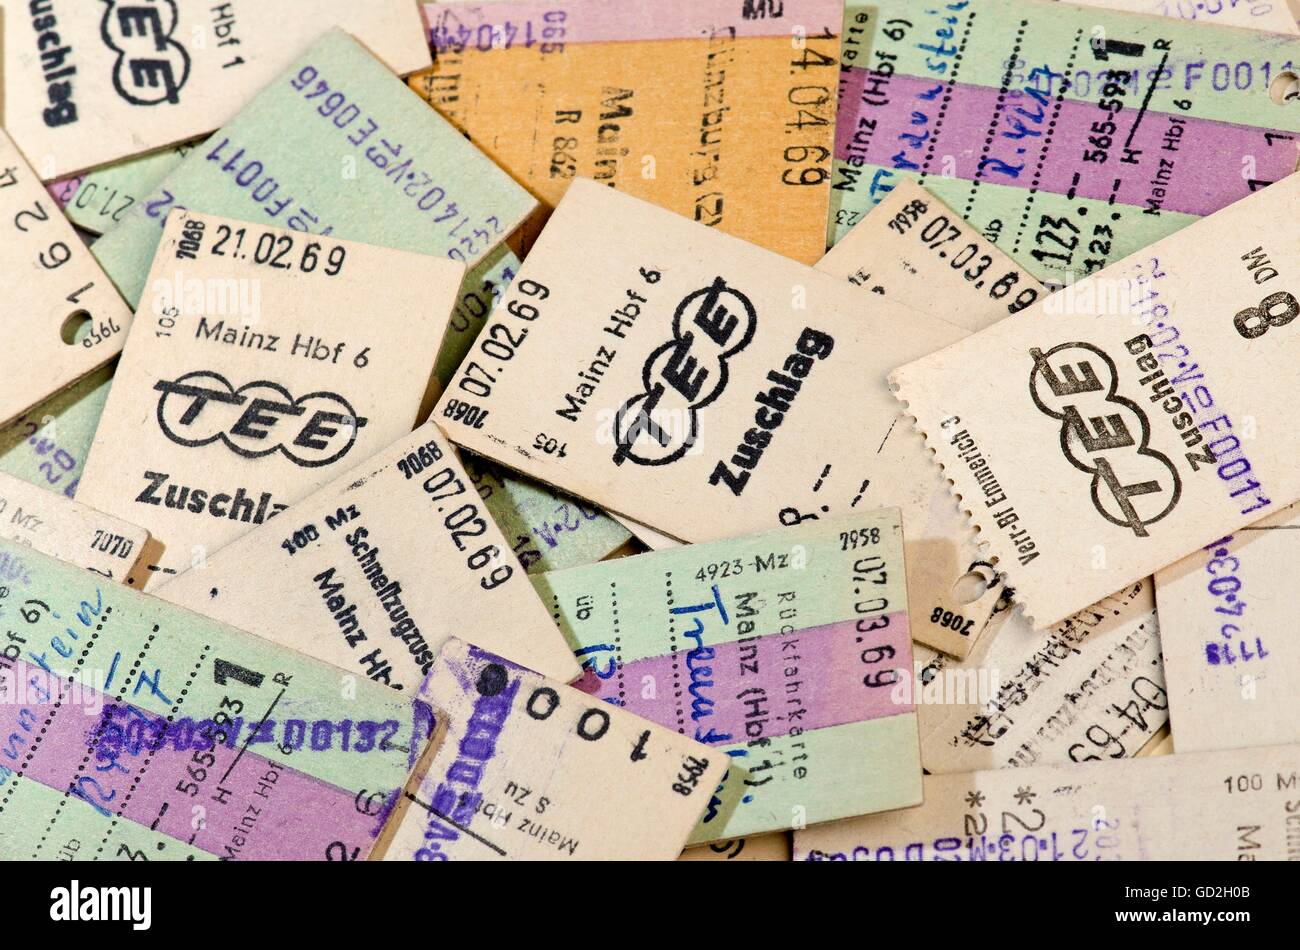 transport / transportation, railway, rail ticket, surcharge for the TEE about 8 DM, Mainz, Germany, 1969, Additional - Stock Image